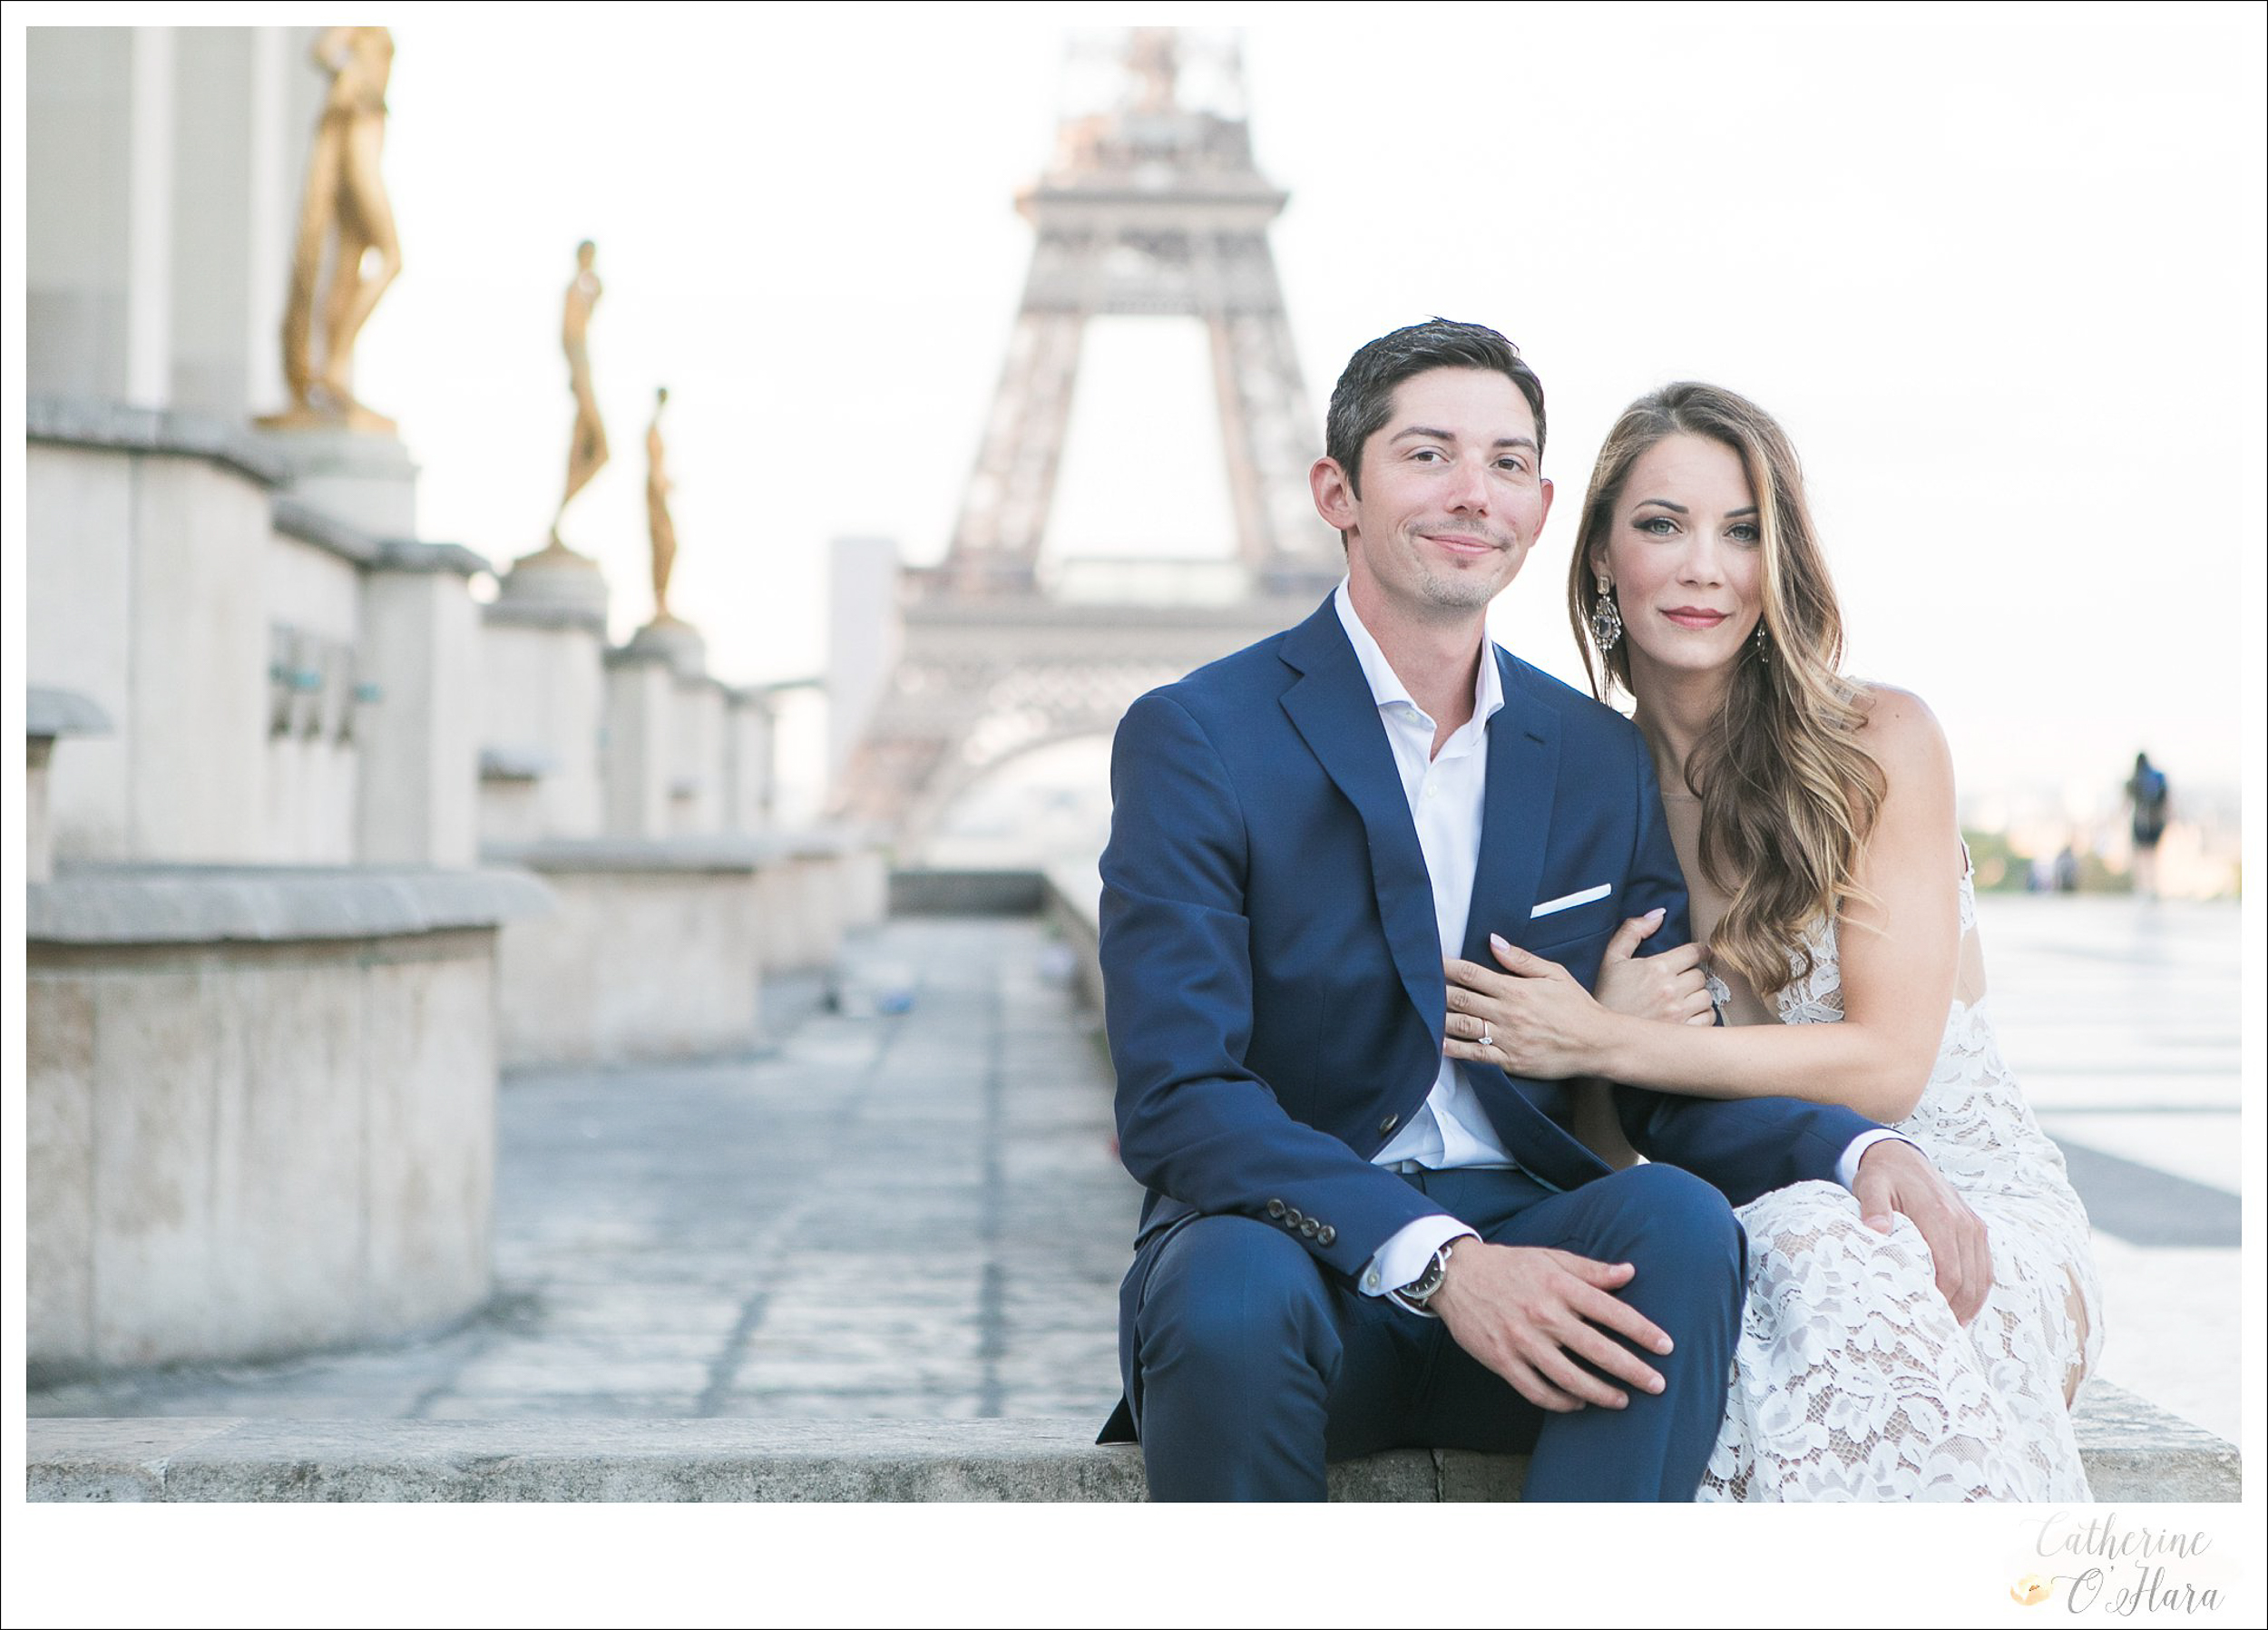 paris france engagement proposal photographer-13.jpg